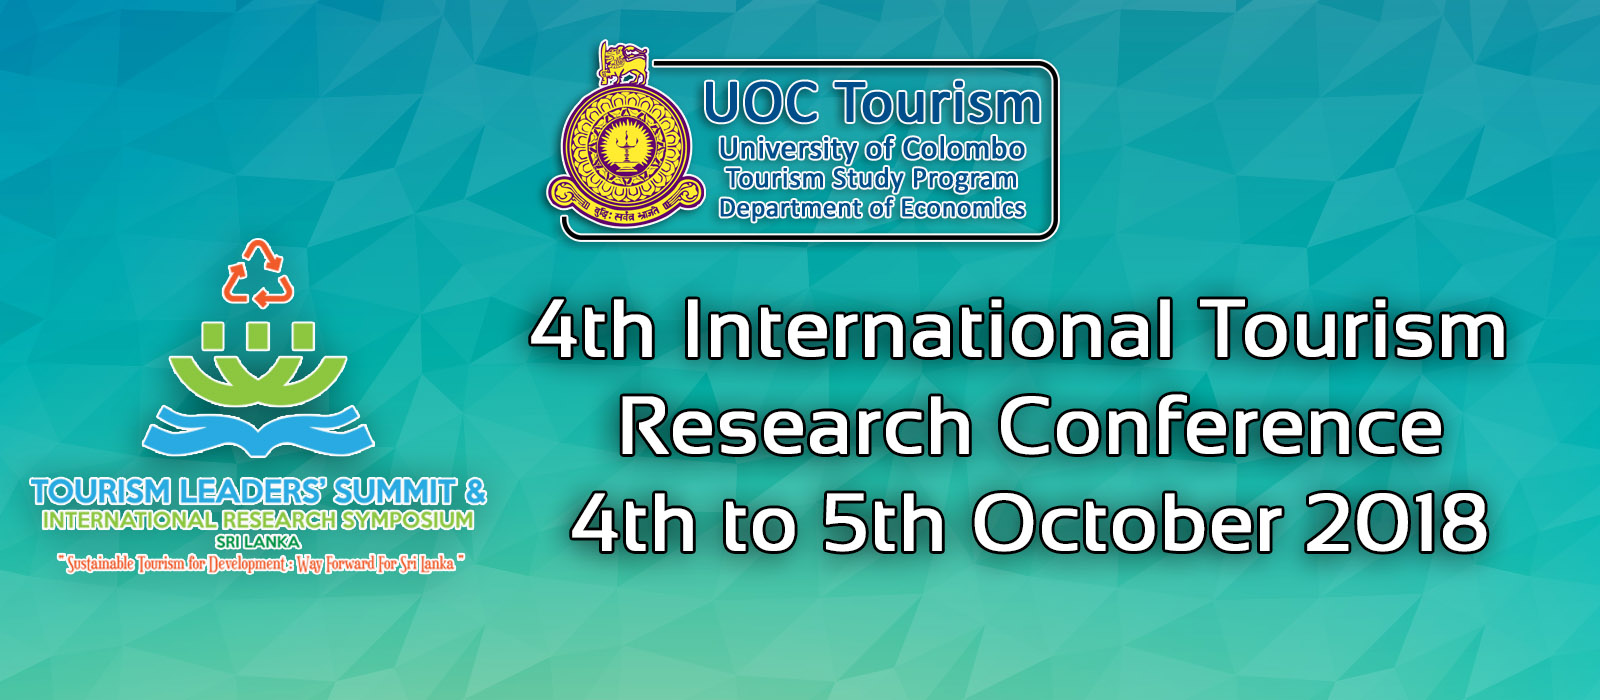 Tourism Leaders' Summit (TLS) and International Tourism Research Conference (ITRC) – 4th & 5th Oct.